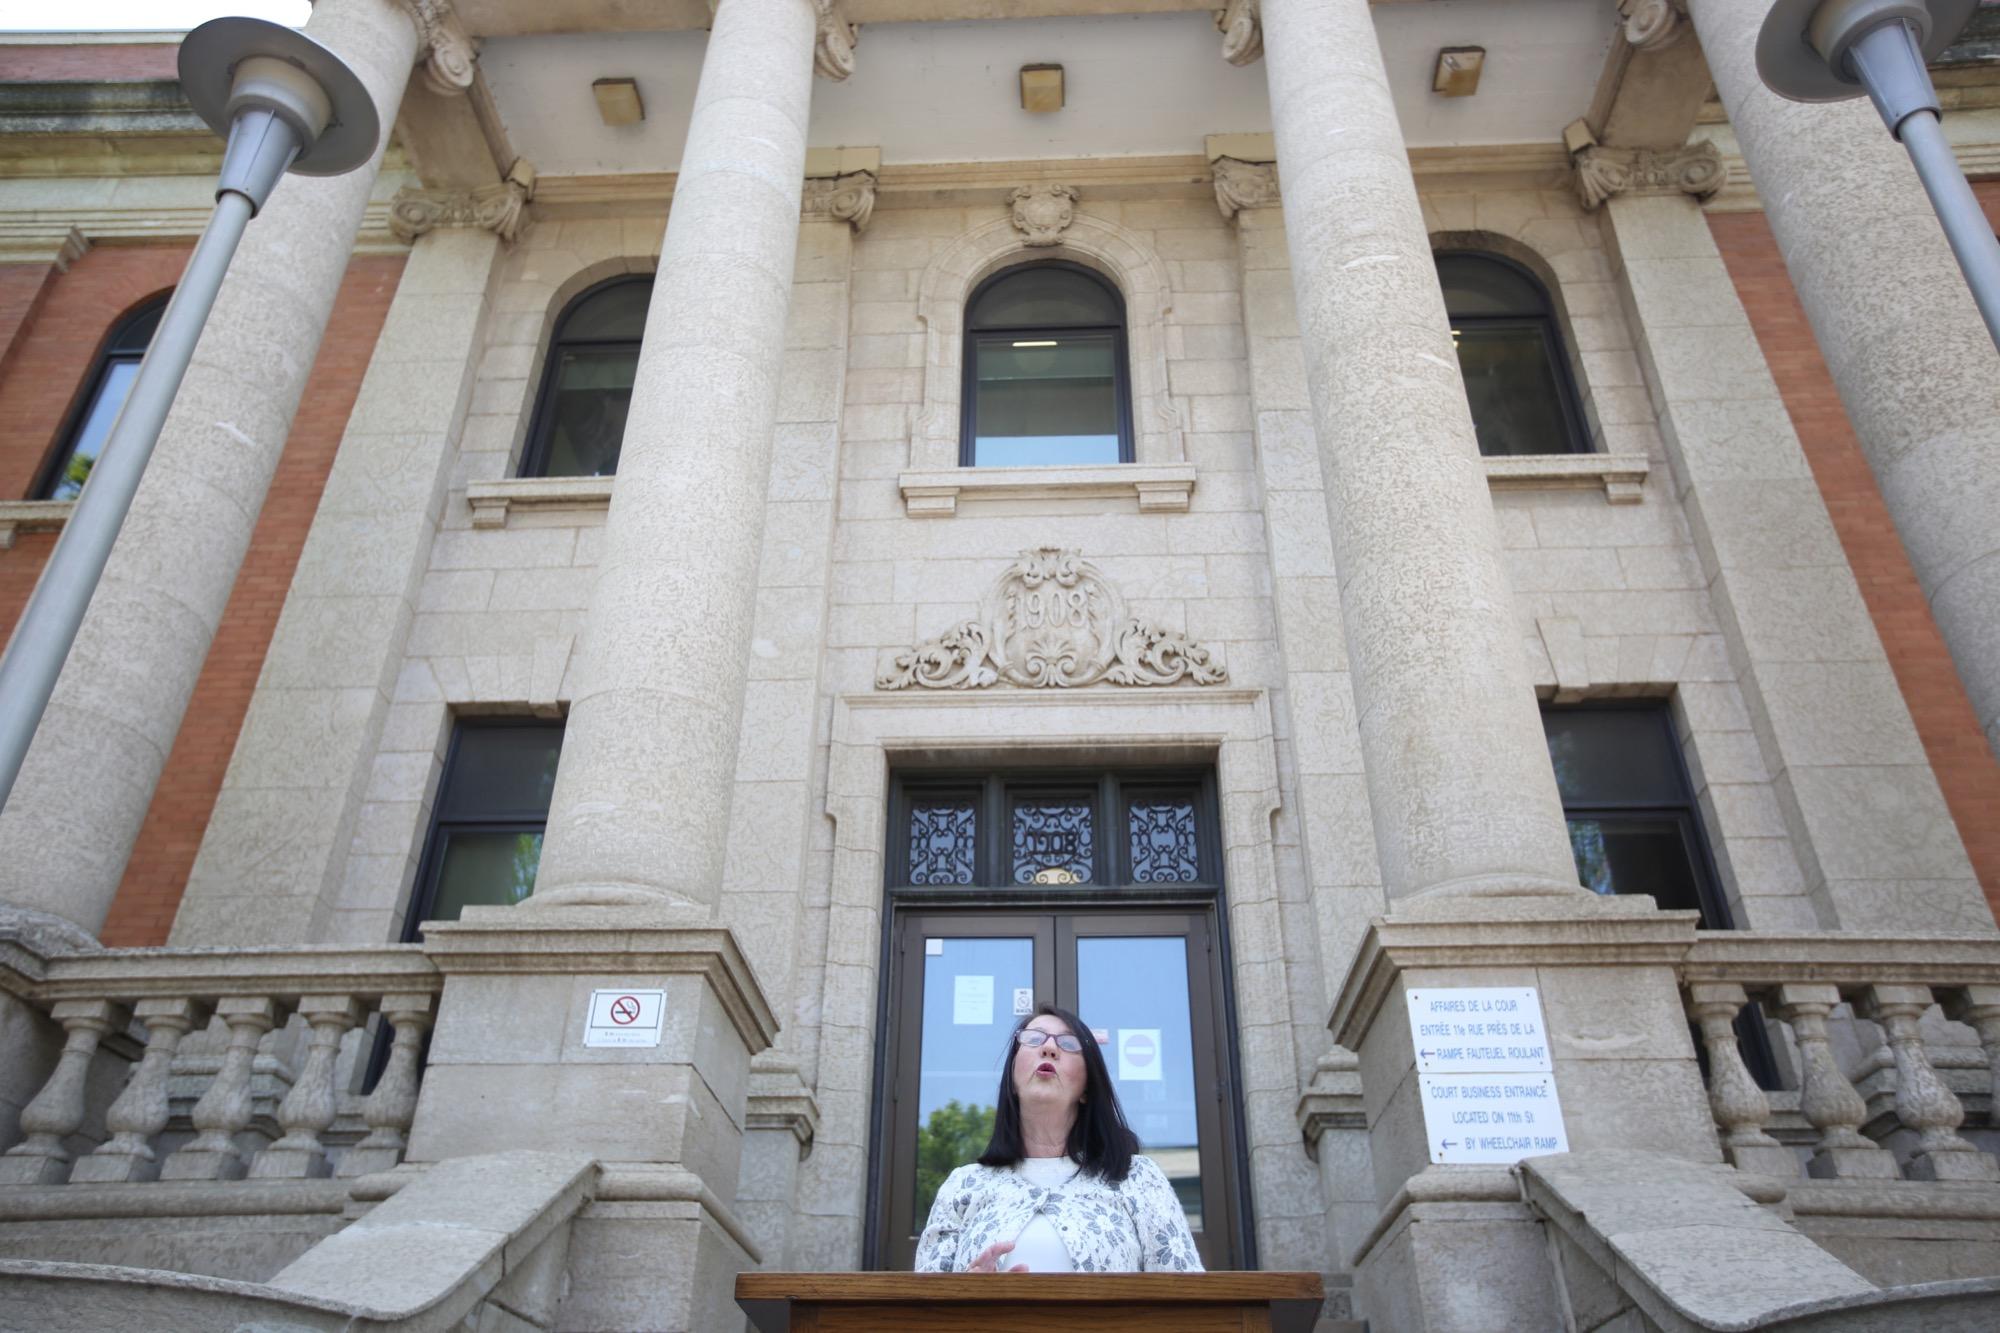 Chief Judge Margaret Wiebe announces the implementation of a drug treatment court in Brandon during a press conference outside the Brandon Court Office on Princess Avenue and 11th Street on Monday. The drug treatment court will provide help to individuals suffering from chronic and acute substance abuse issues.